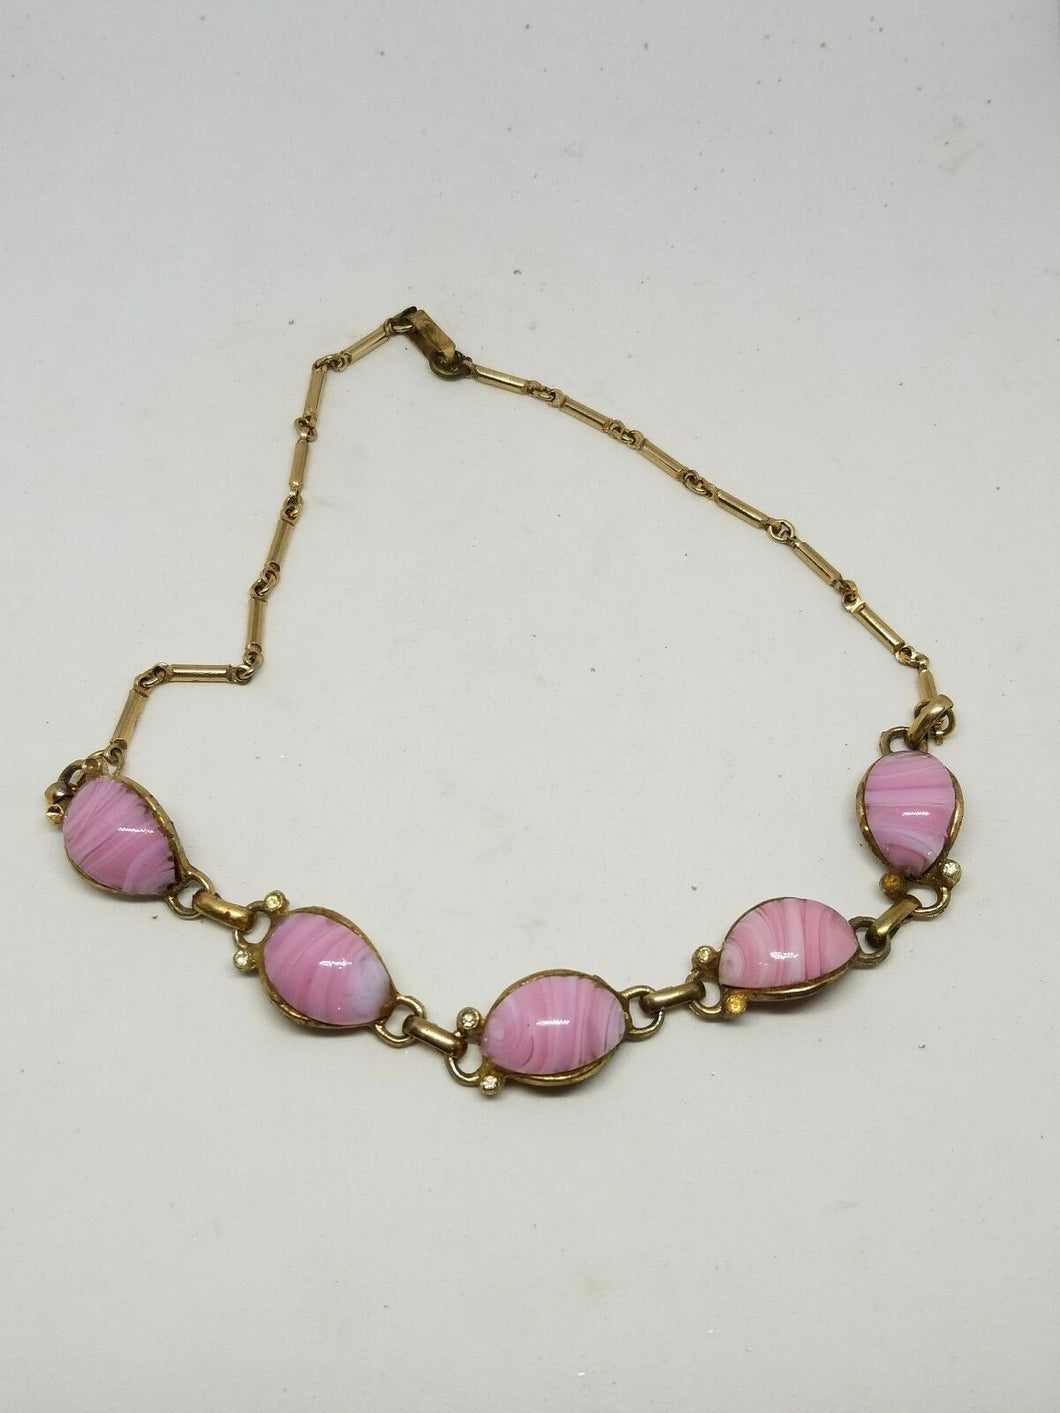 Vintage Goldtone Pink Swirl Lucite Costume Necklace